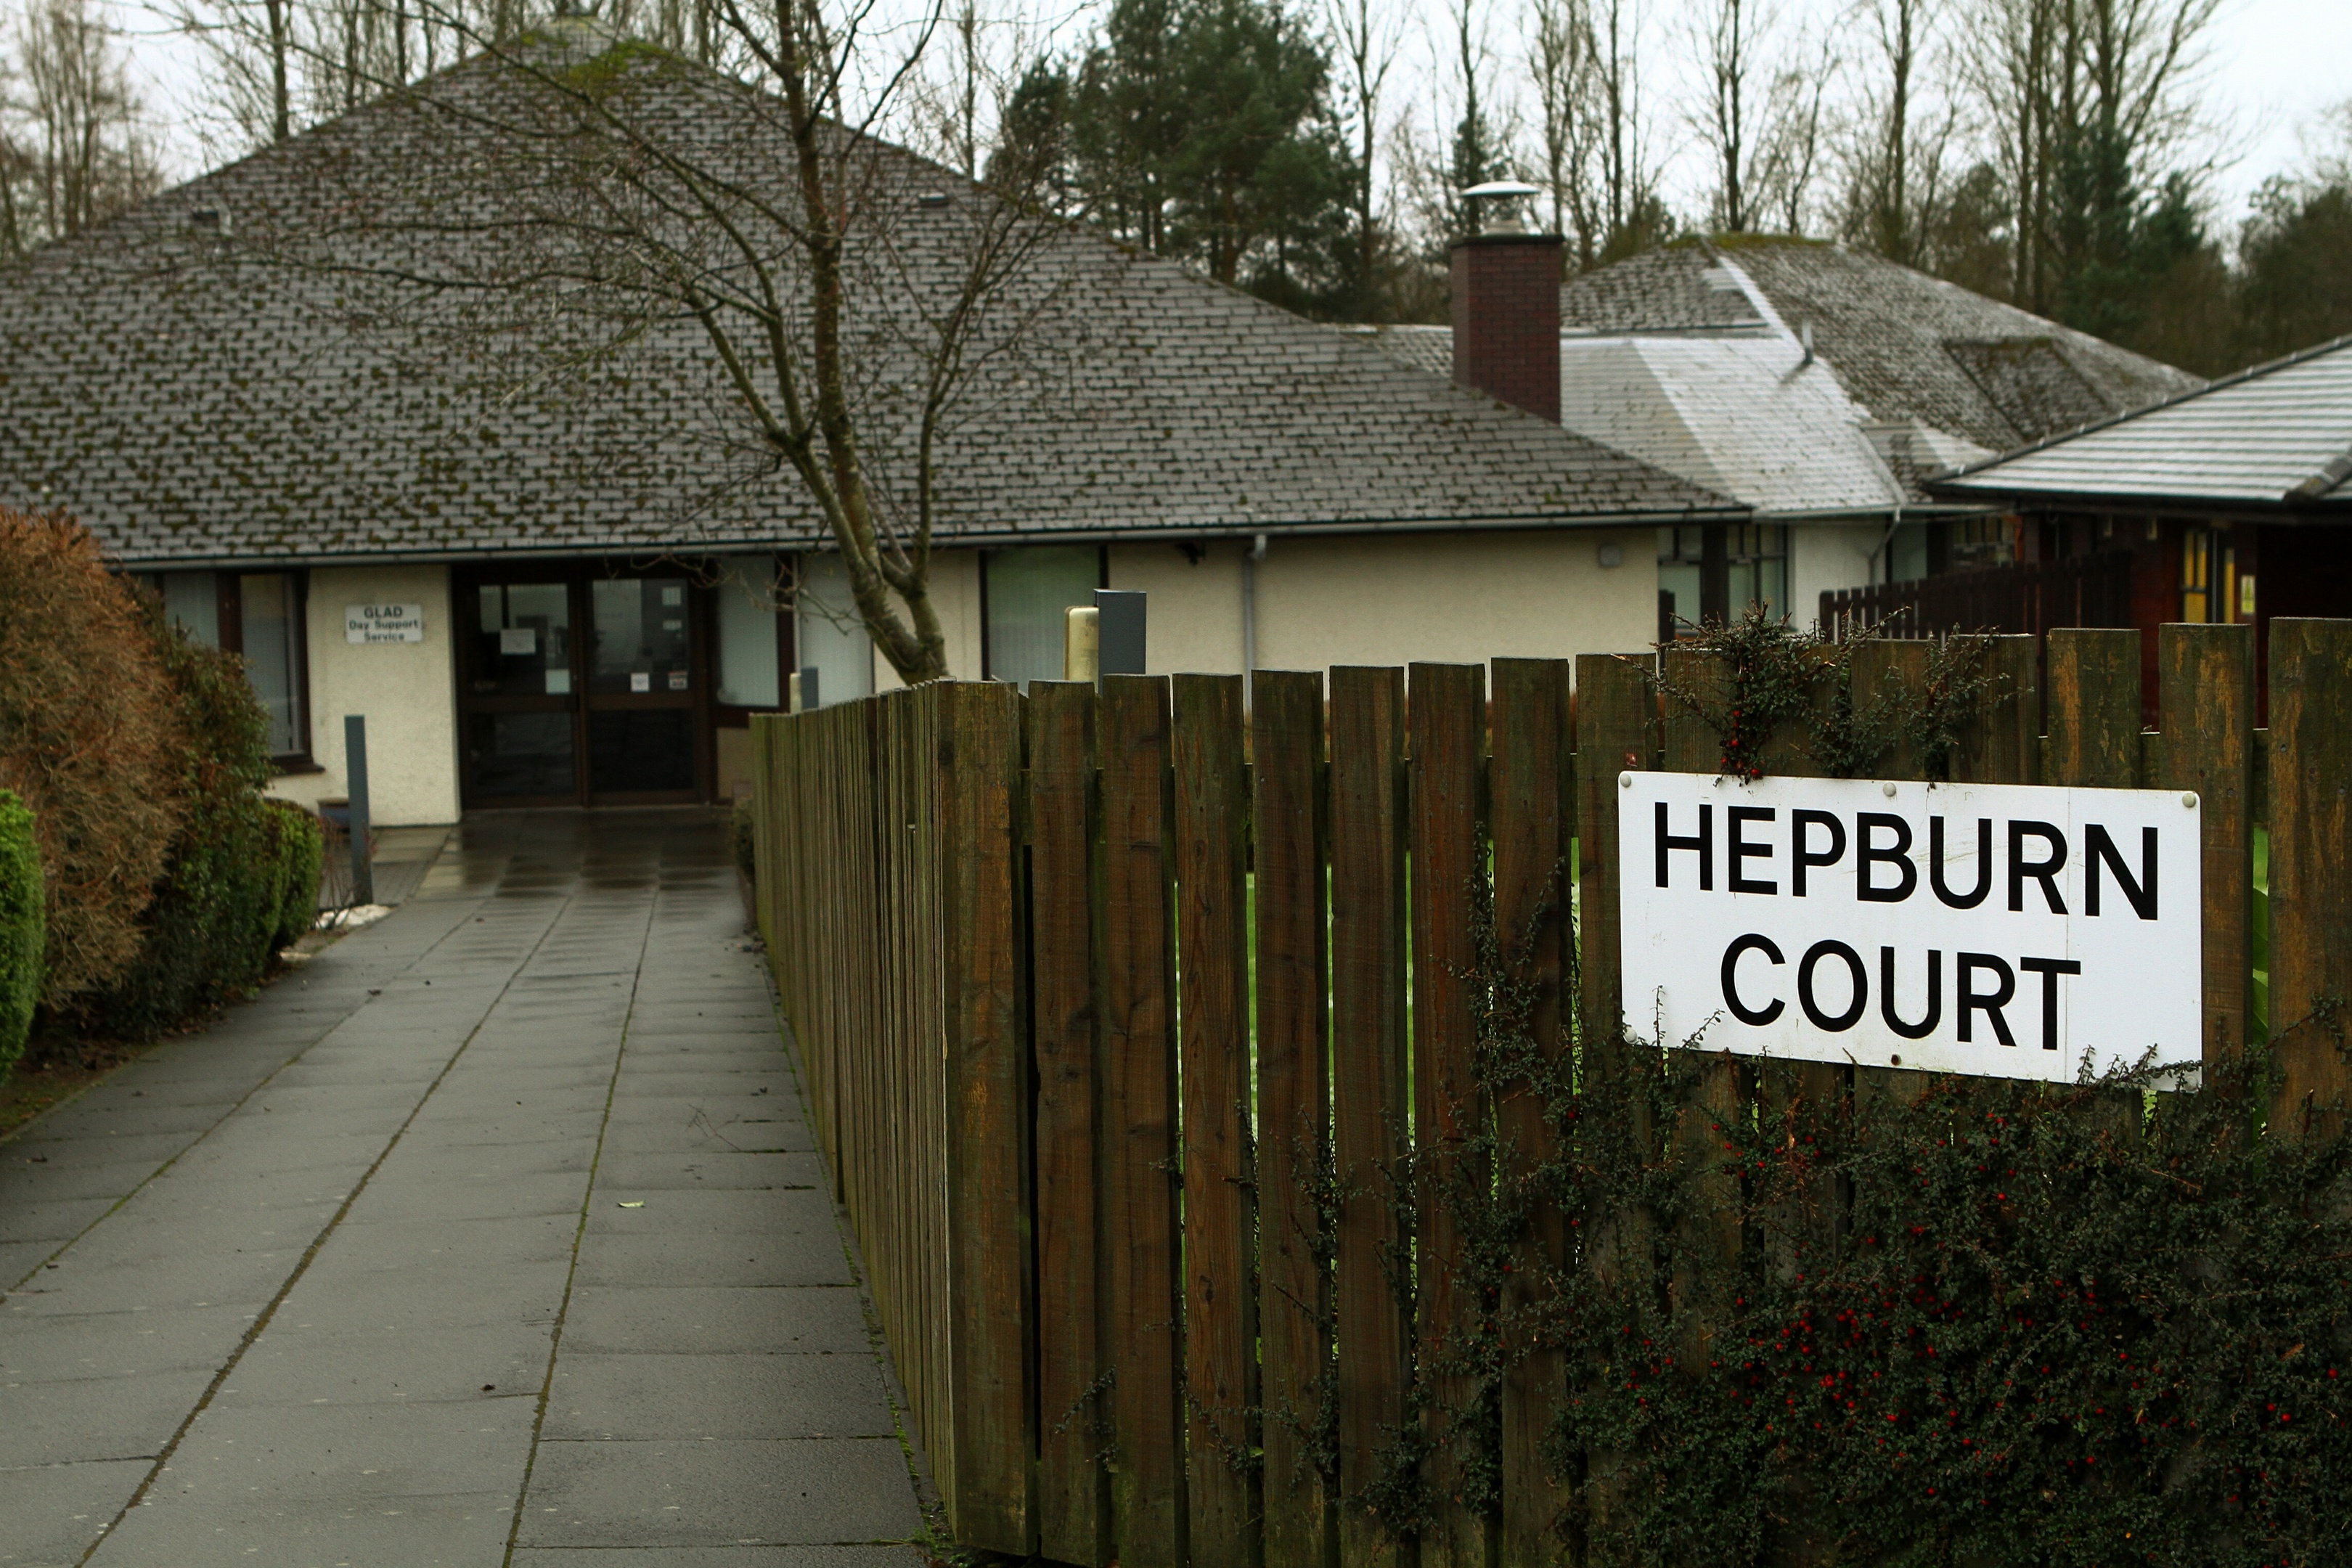 The Hepburn Court Care Home in Glenrothes.